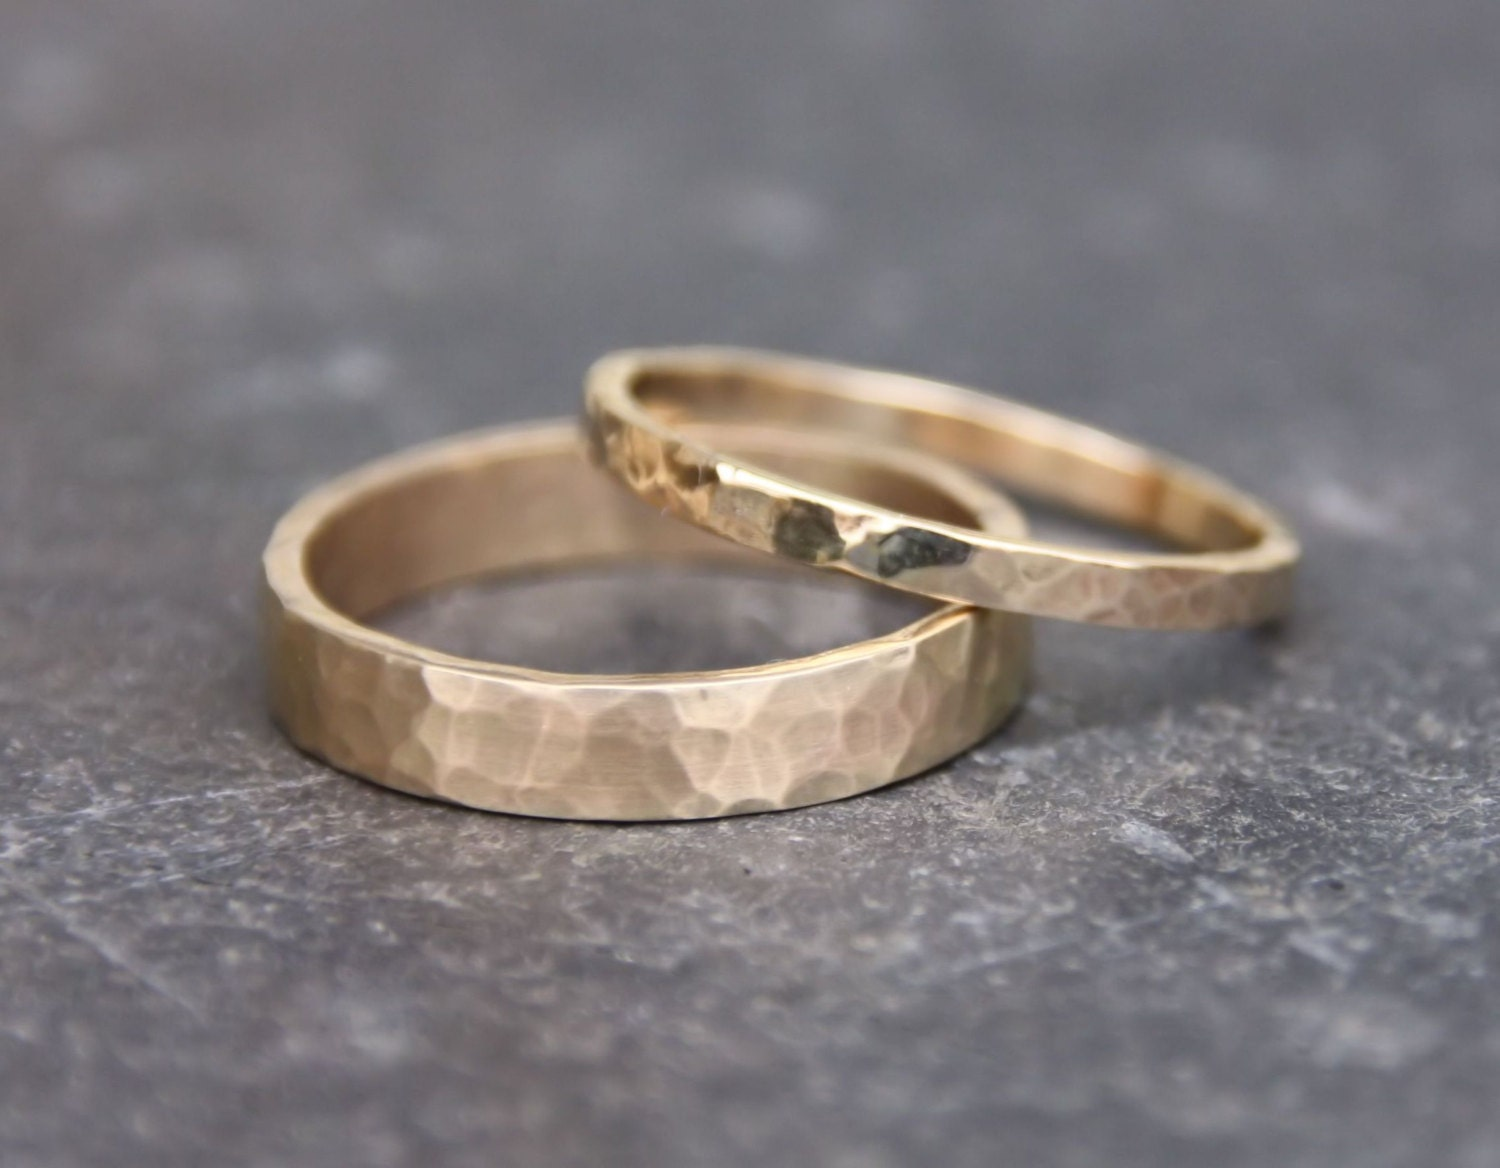 Hammered Gold Wedding Rings // 14k Gold Ring by TorchfireStudio